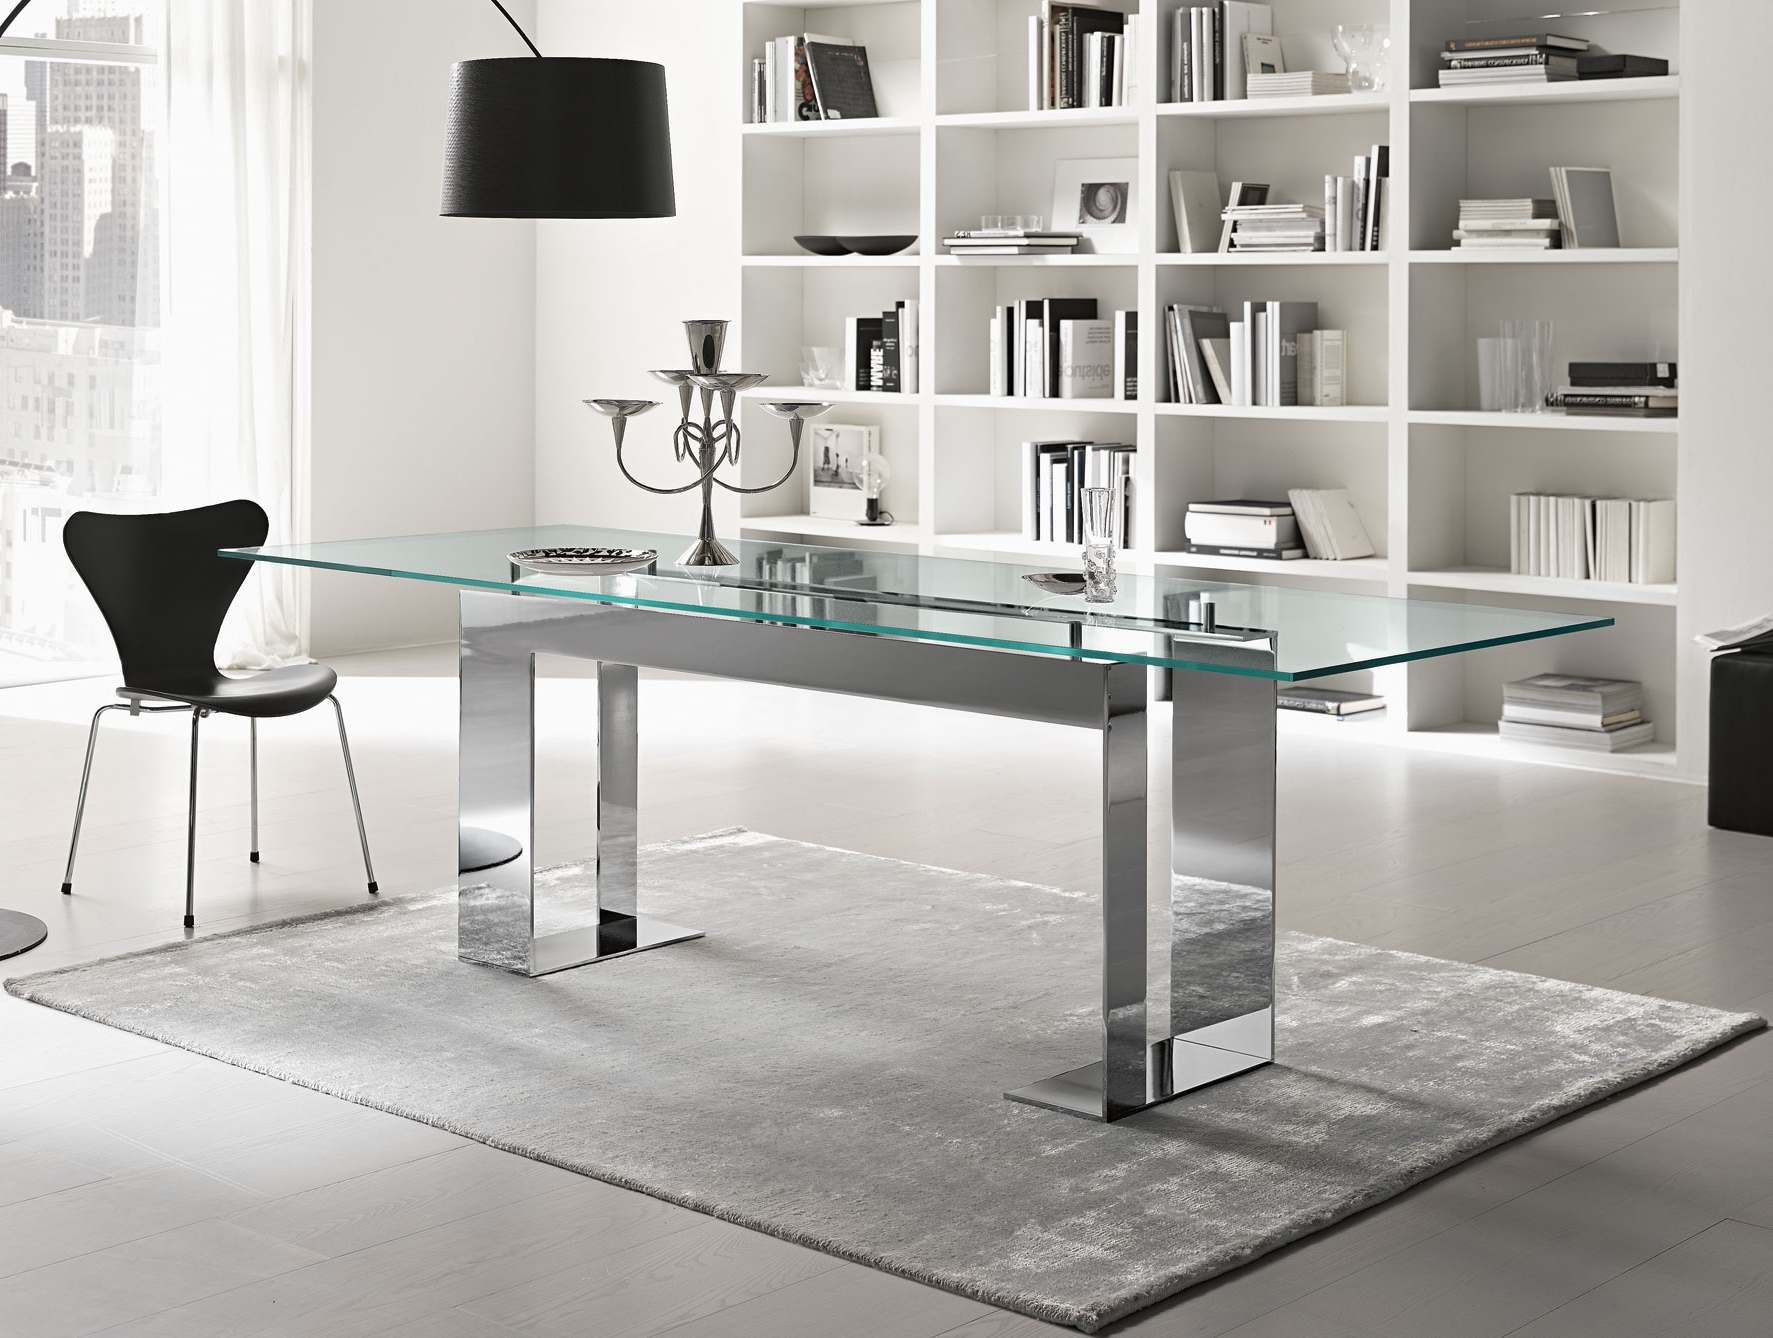 Glass Dining Tables With Regard To Most Recently Released Nella Vetrina Tonelli Miles Contemporary Italian Glass Dining Table (View 10 of 25)